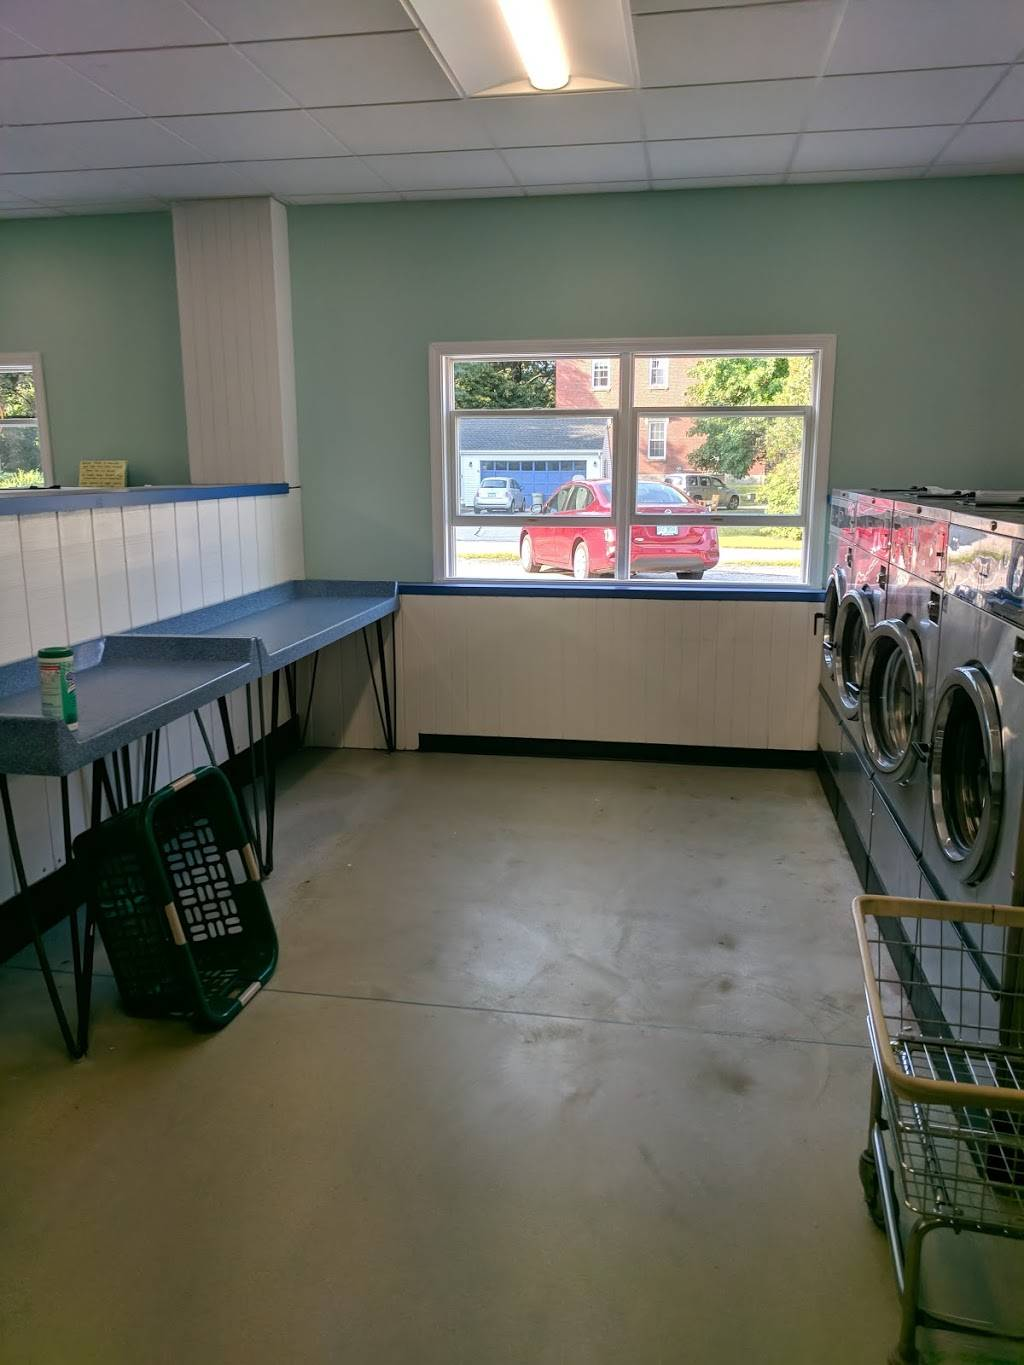 Laundromat - laundry  | Photo 1 of 4 | Address: 845 Lafayette Rd, Seabrook, NH 03874, USA